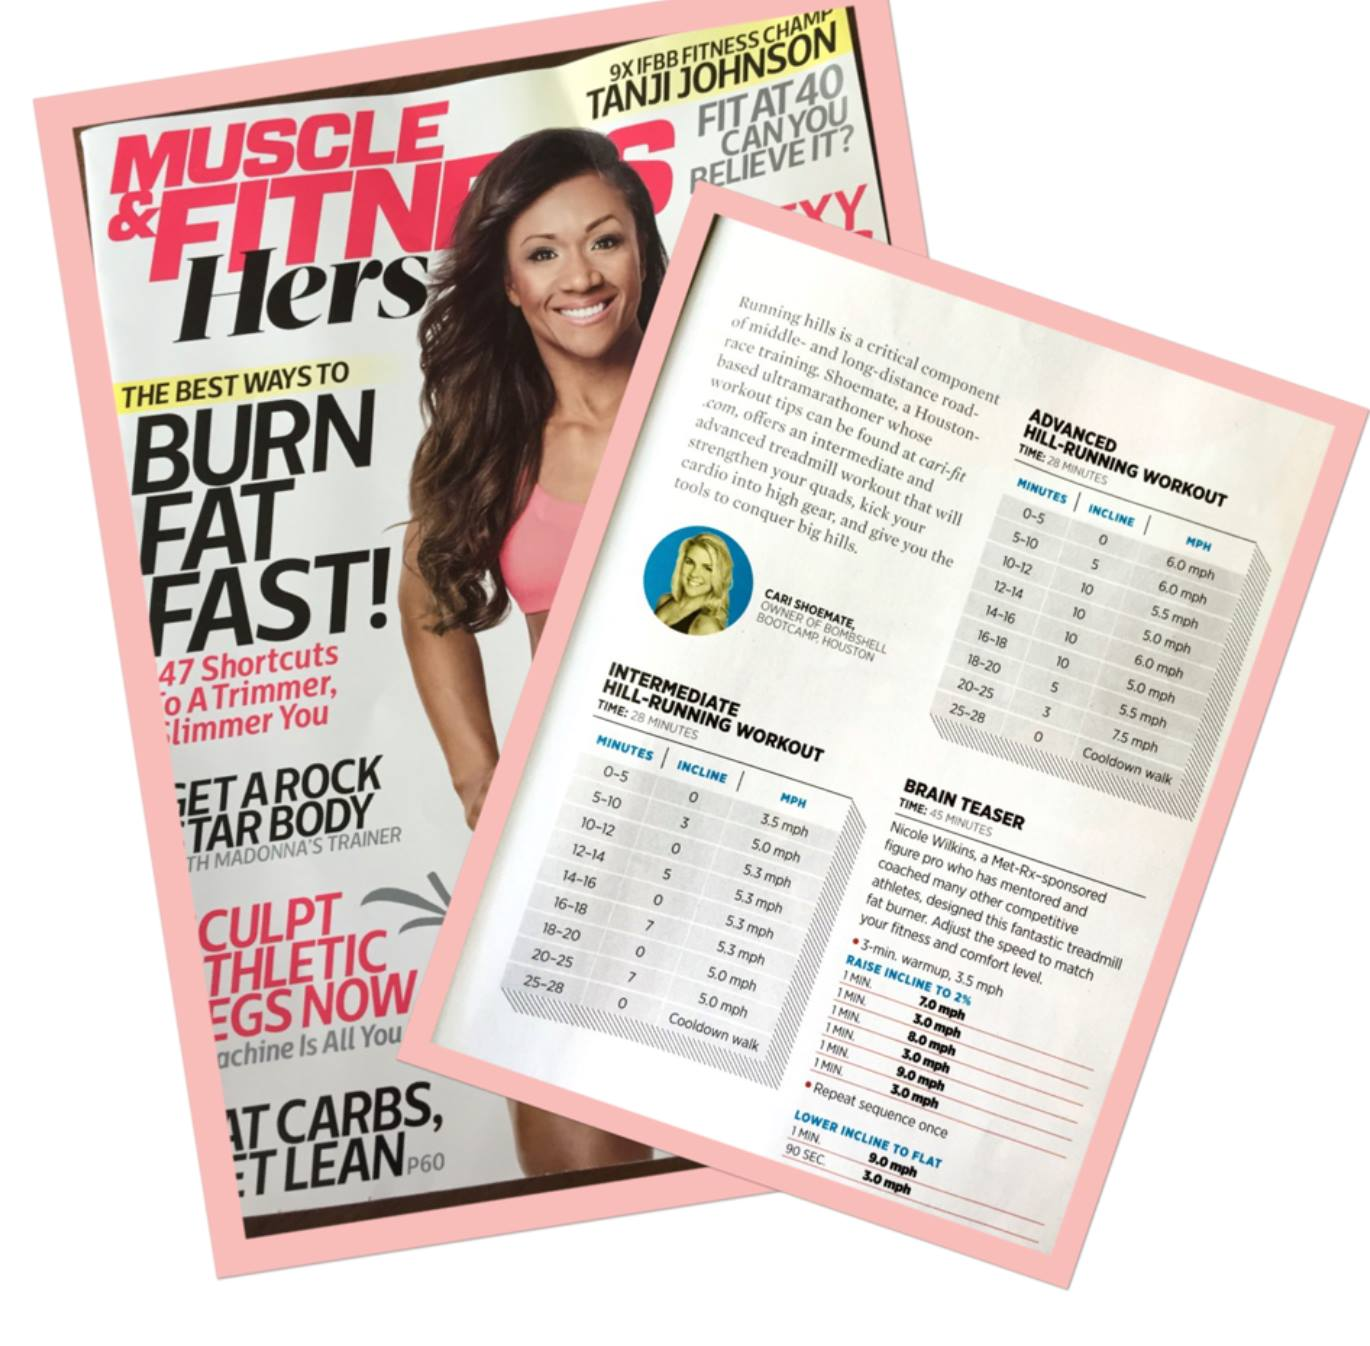 advanced hill running workout seen in muscle fitness hers